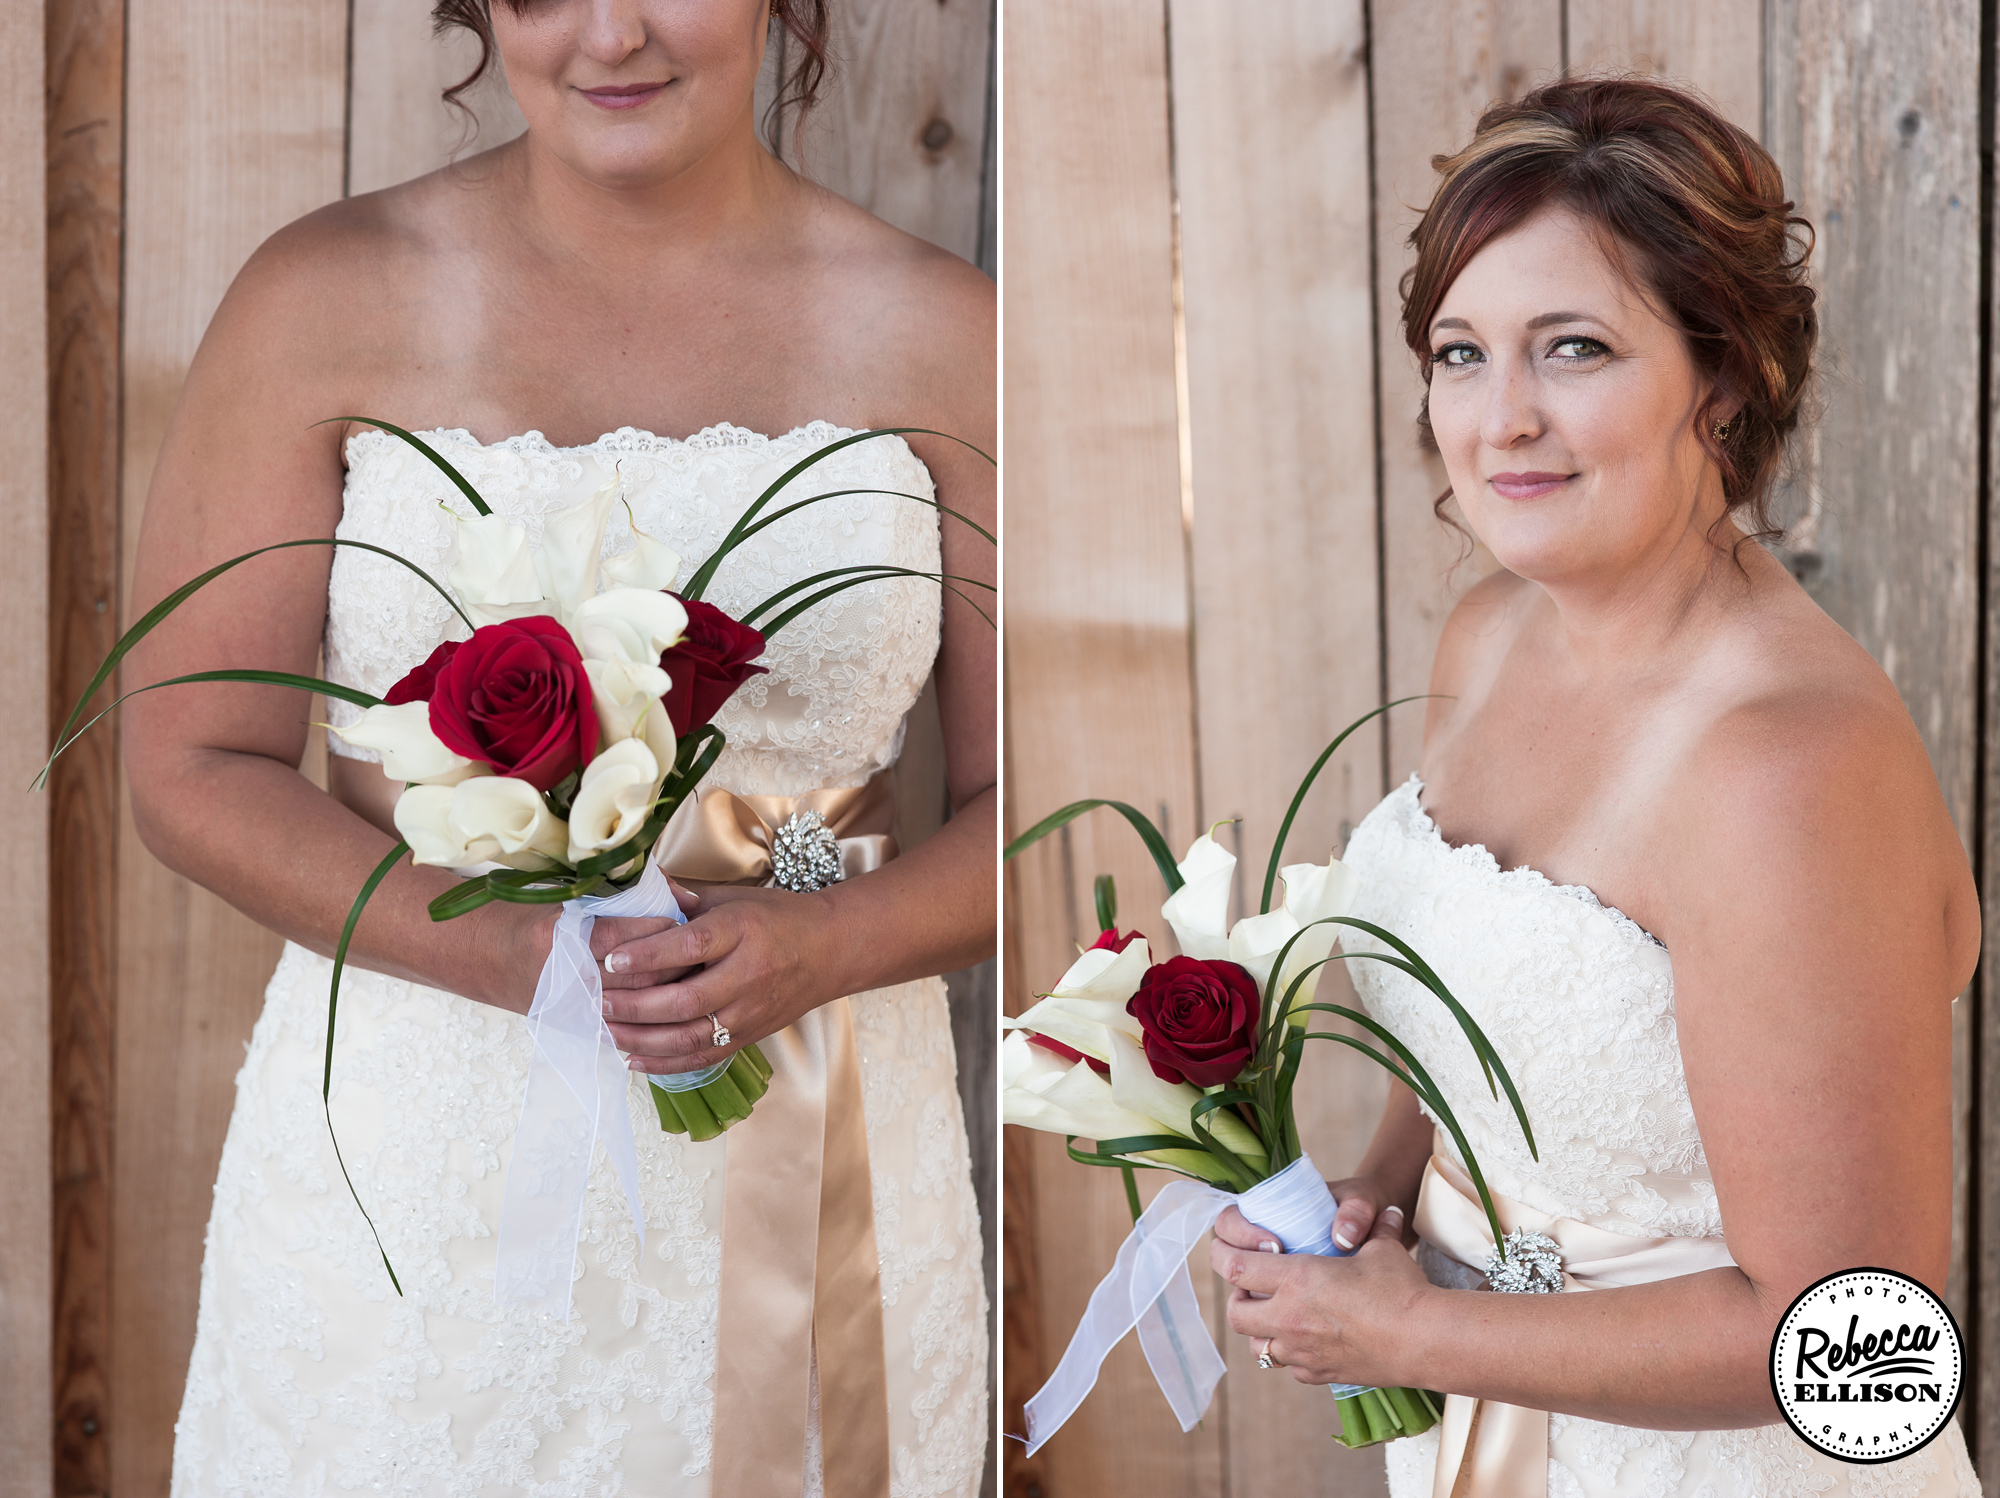 Outdoor bridal portraits featuring a strapless belted wedding dress and red and white flowers photographed by Rebecca Ellison Photography